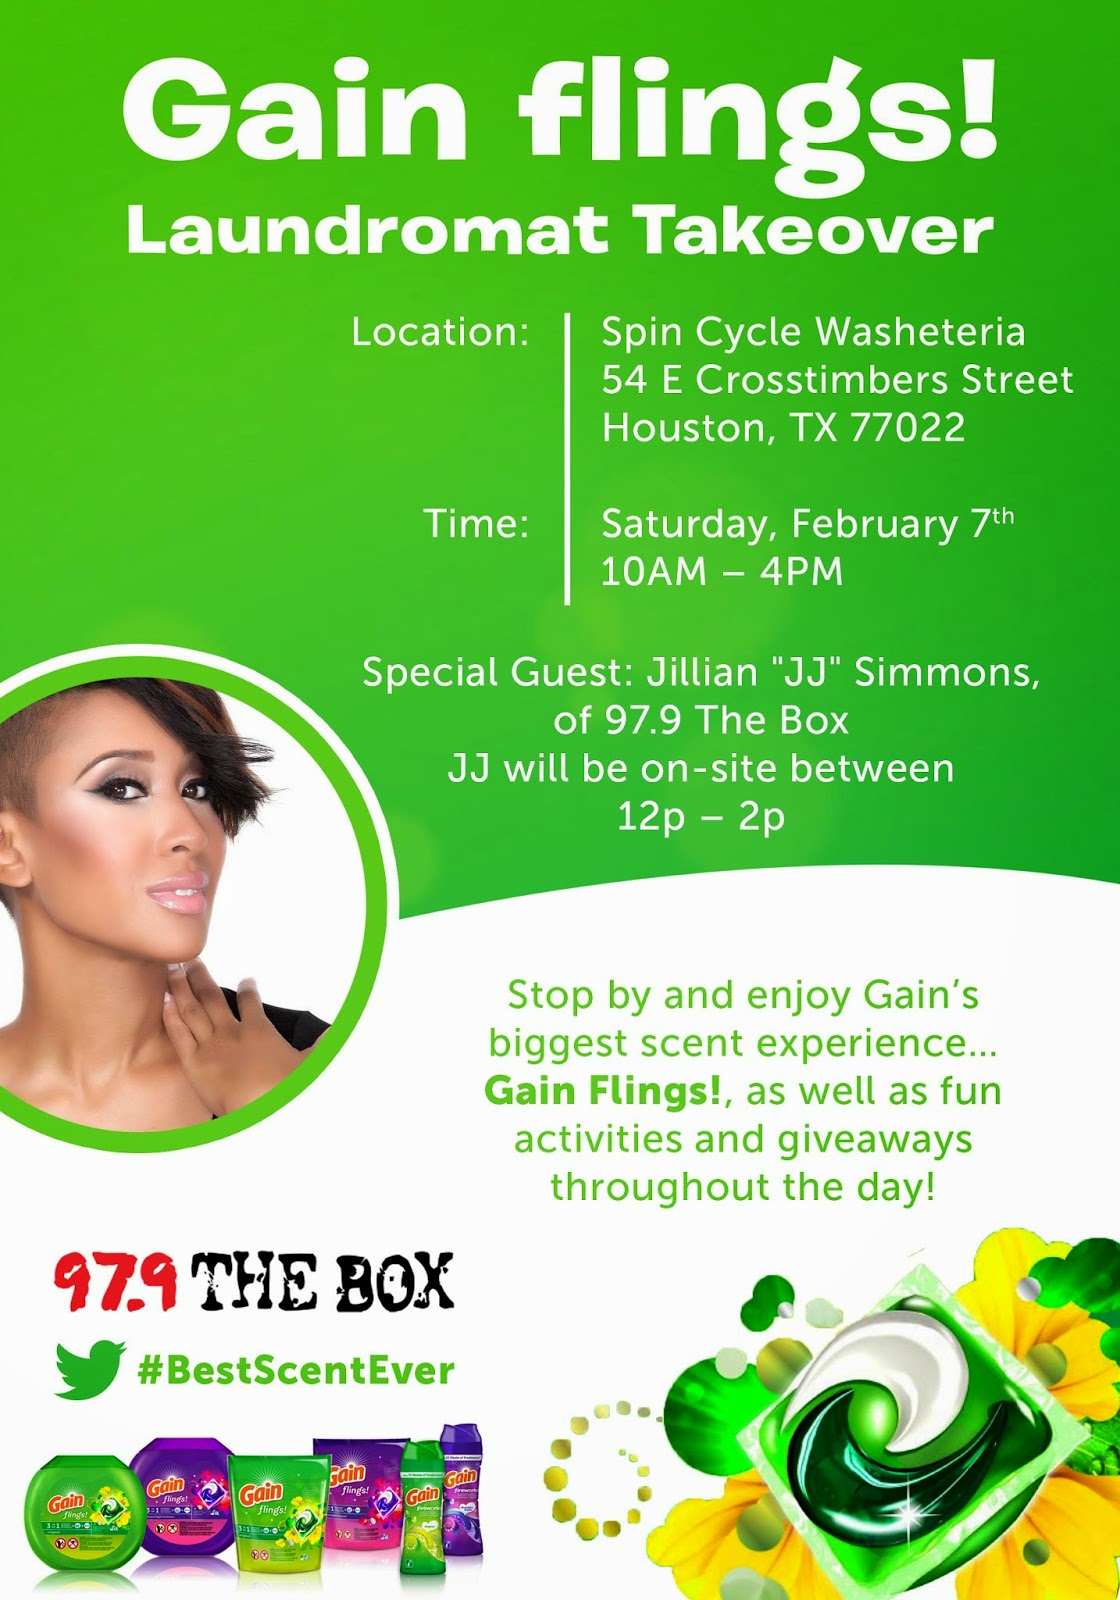 GAIN FLINGS LAUNDROMAT TAKEOVER- See you there!